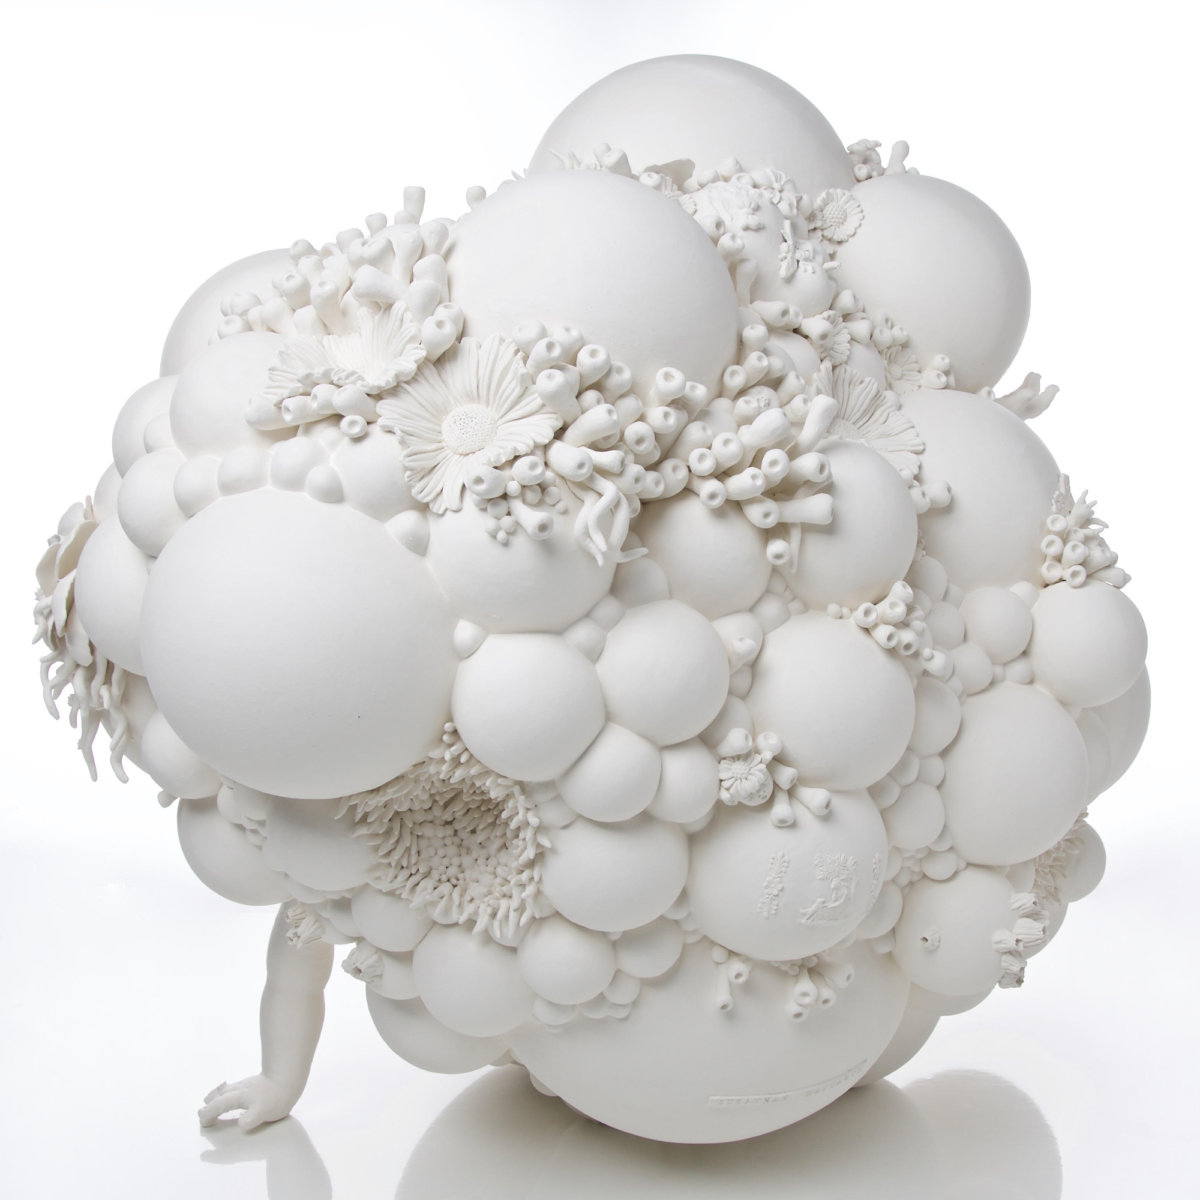 Susannah-Montague-ceramic-sculpture-porcelain-contemporary-art-gallery-Vancouver-Elissa-Cristall-Gallery